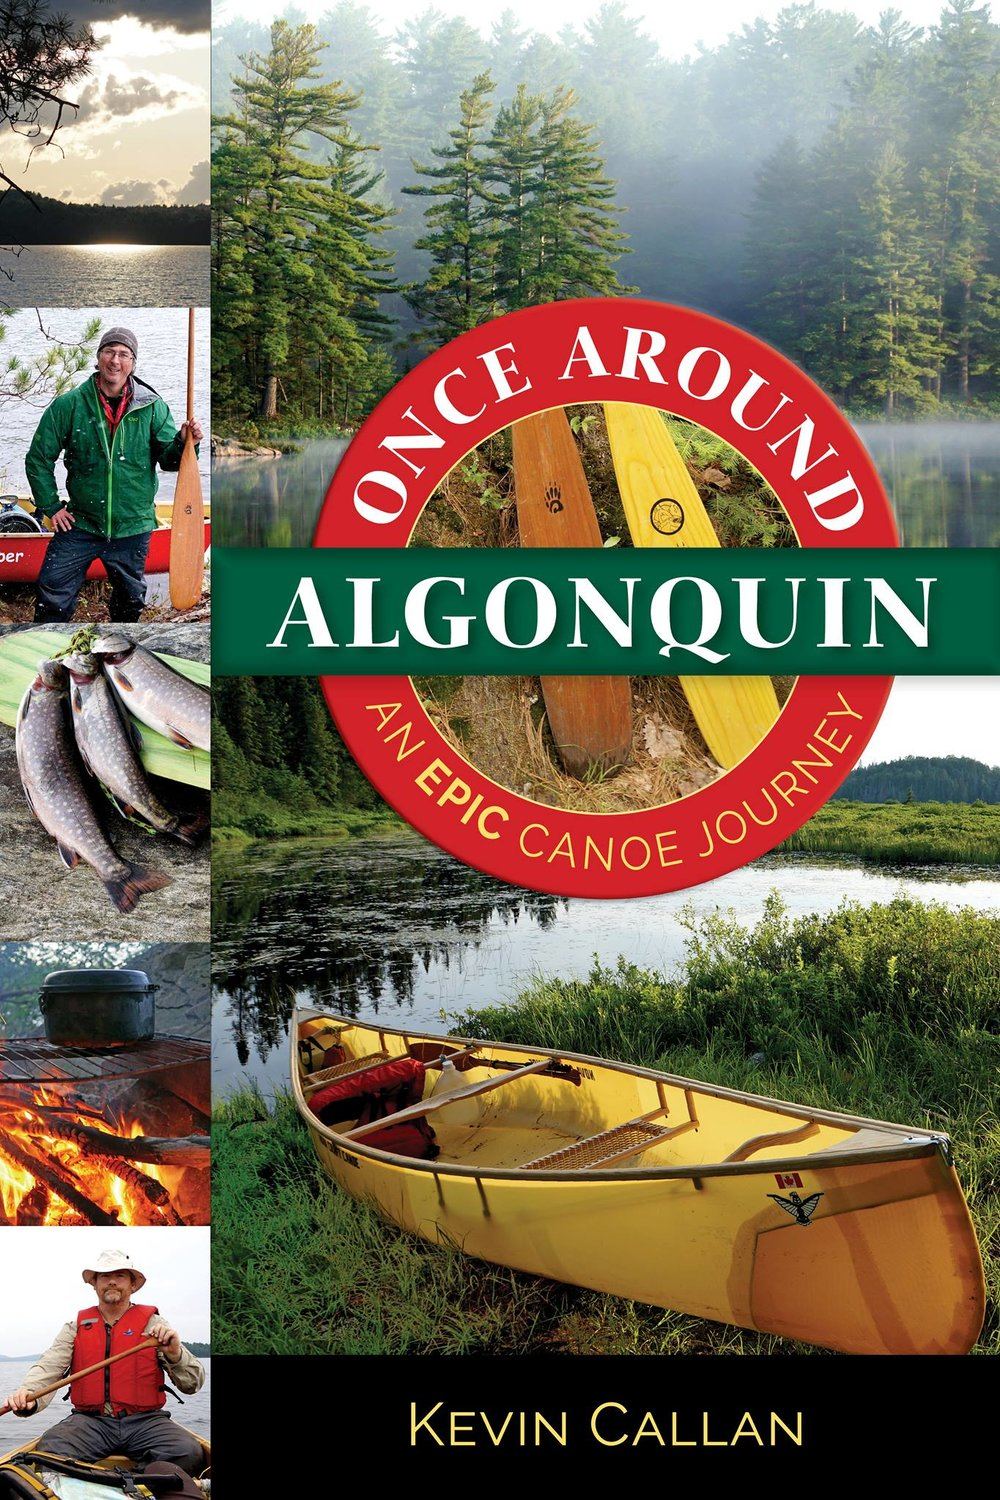 OnceAroundAlgonquin.jpg